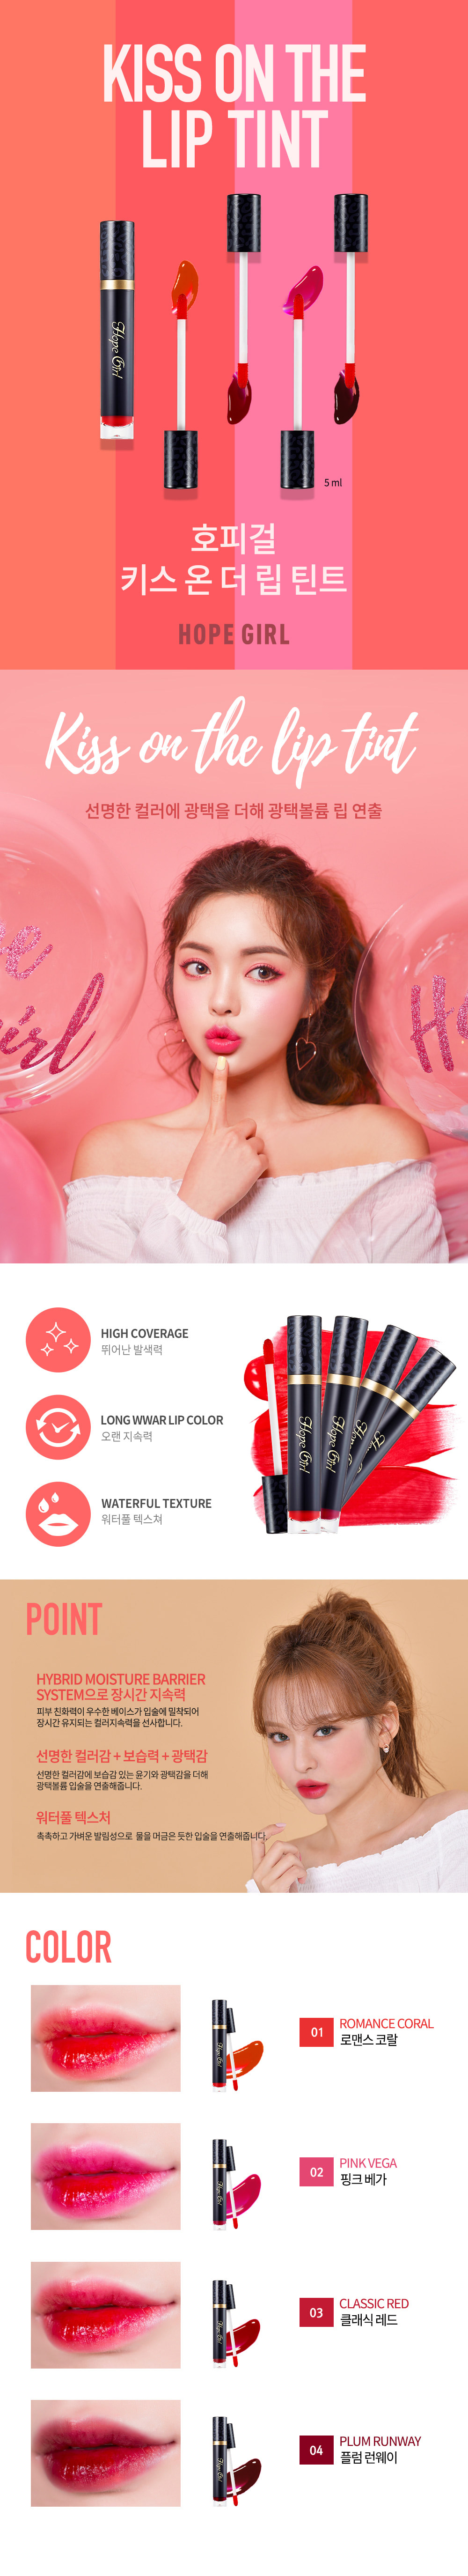 hope-girl-kiss-on-the-kip-tint-korean-cosmetics1.jpg